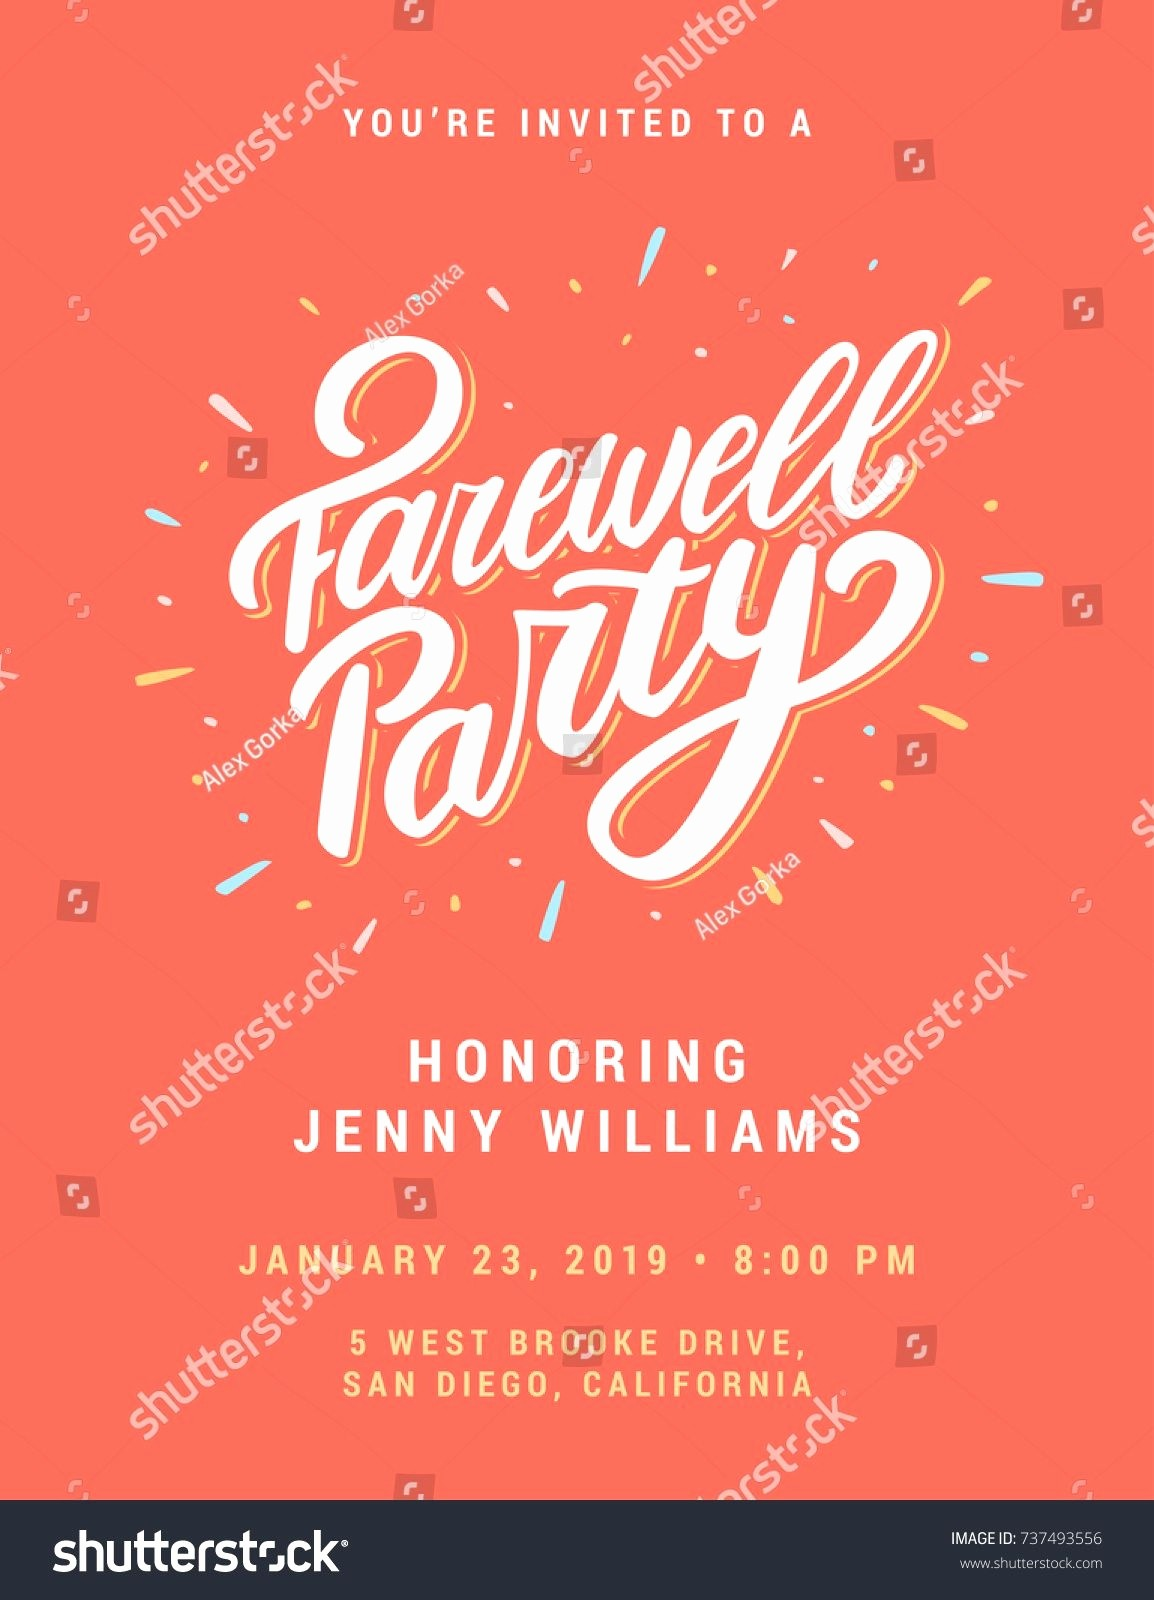 Going Away Flyer Template Free Unique Farewell Party Invitation Template Free